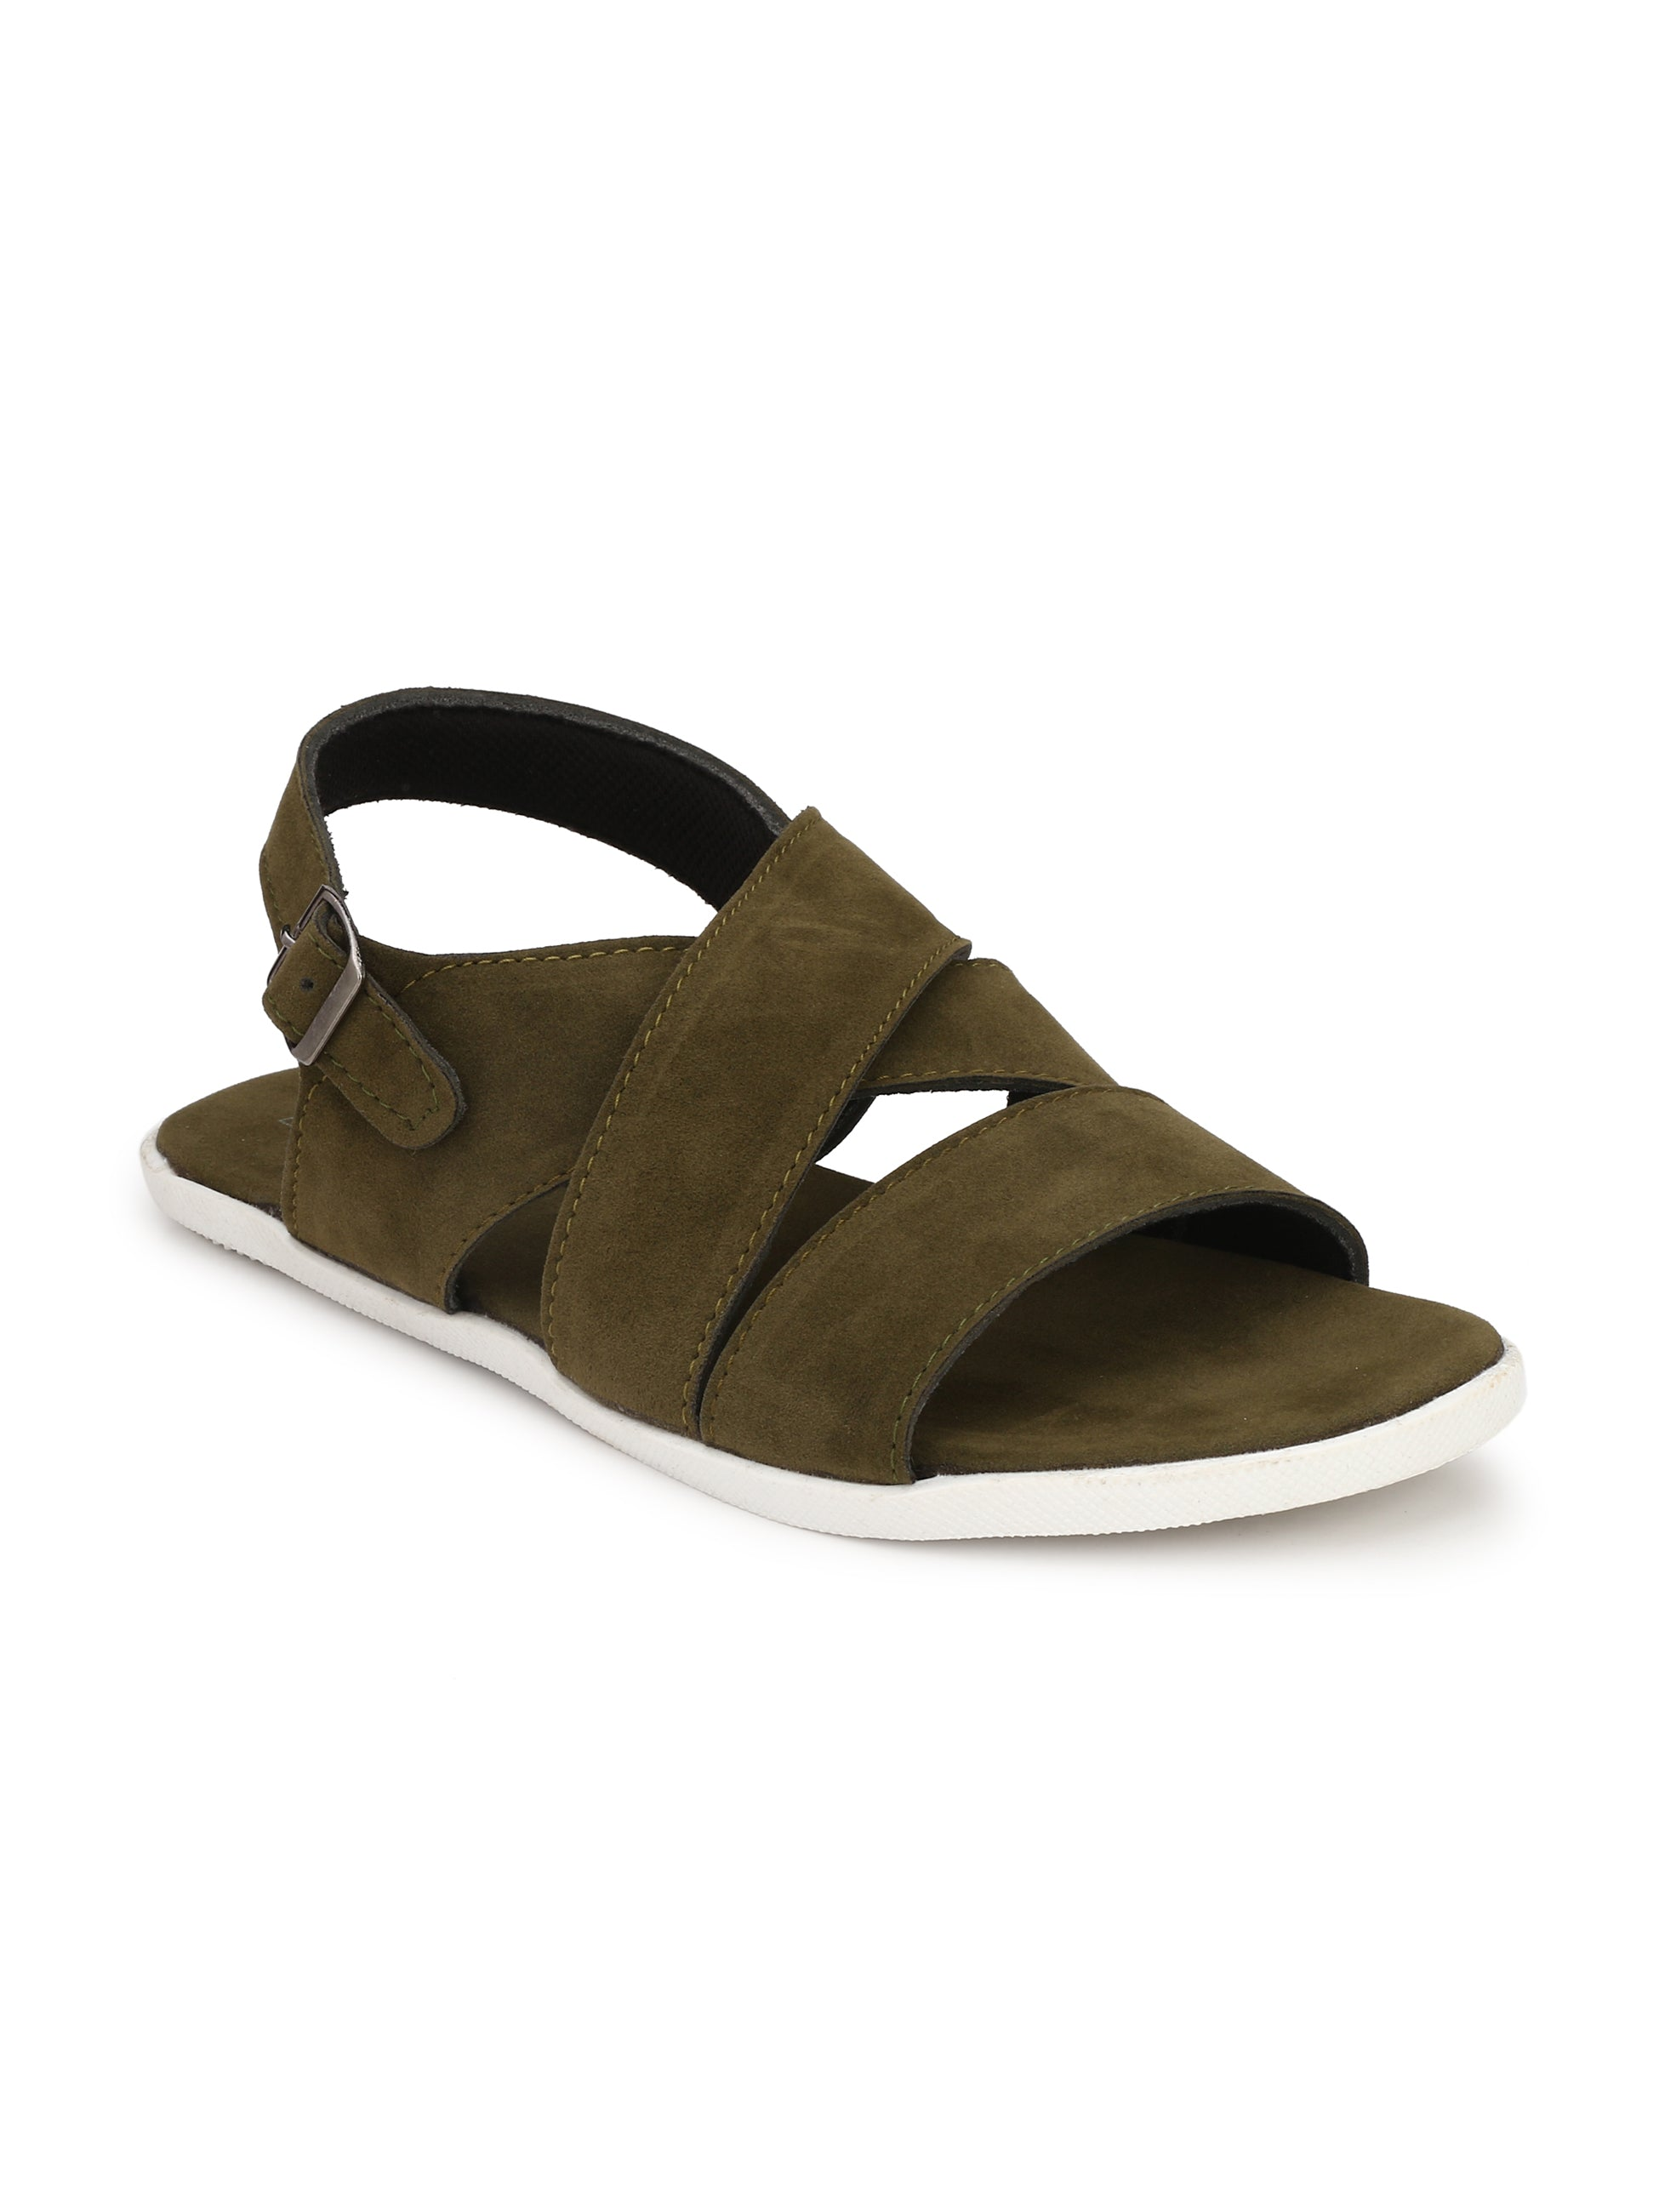 Open Toe Green Jazz Sandal - shoegaro